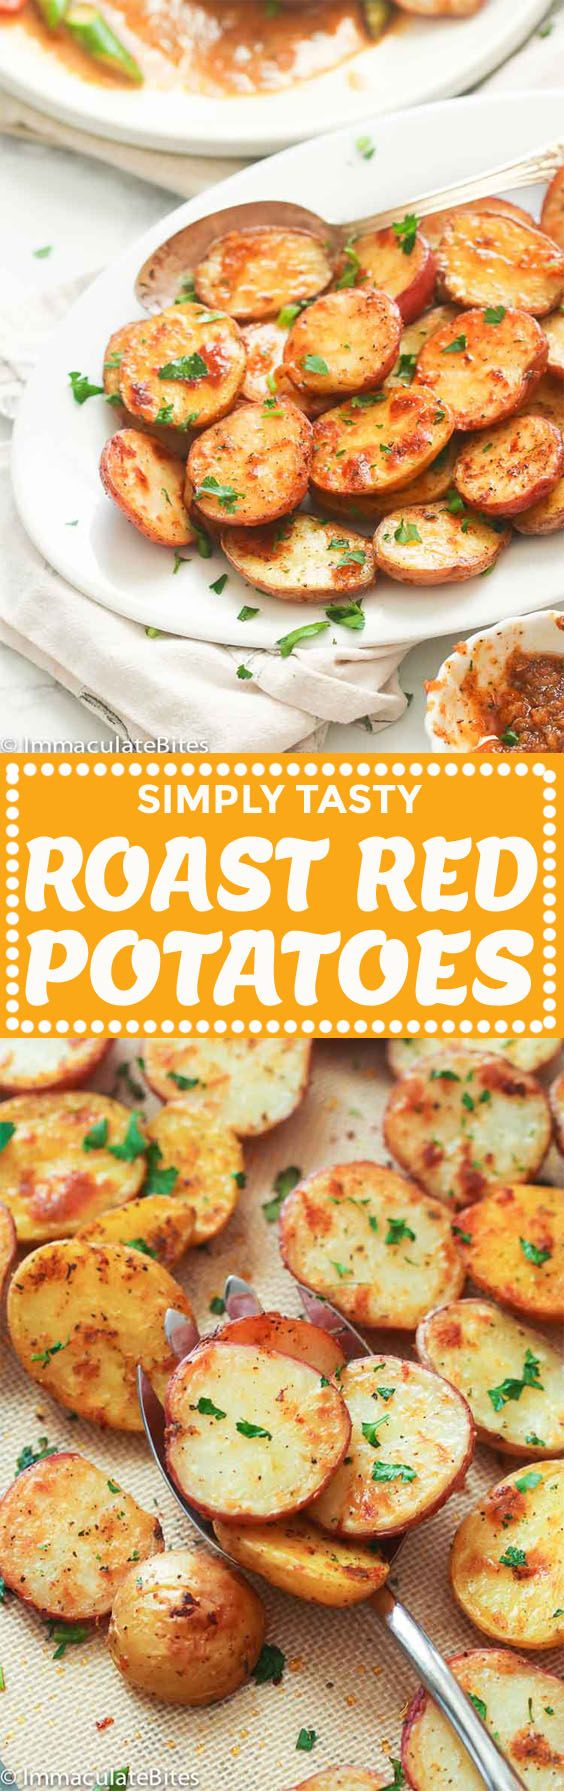 Oven Roasted Red Potatoes- Nicely cut baby red potatoes tossed in olive oil, herbs, garlic and creole seasoning. A great and simple side dish anytime of the year -Easter, Summer , and weekdays . Crispy, garlicky with a kick of heat!